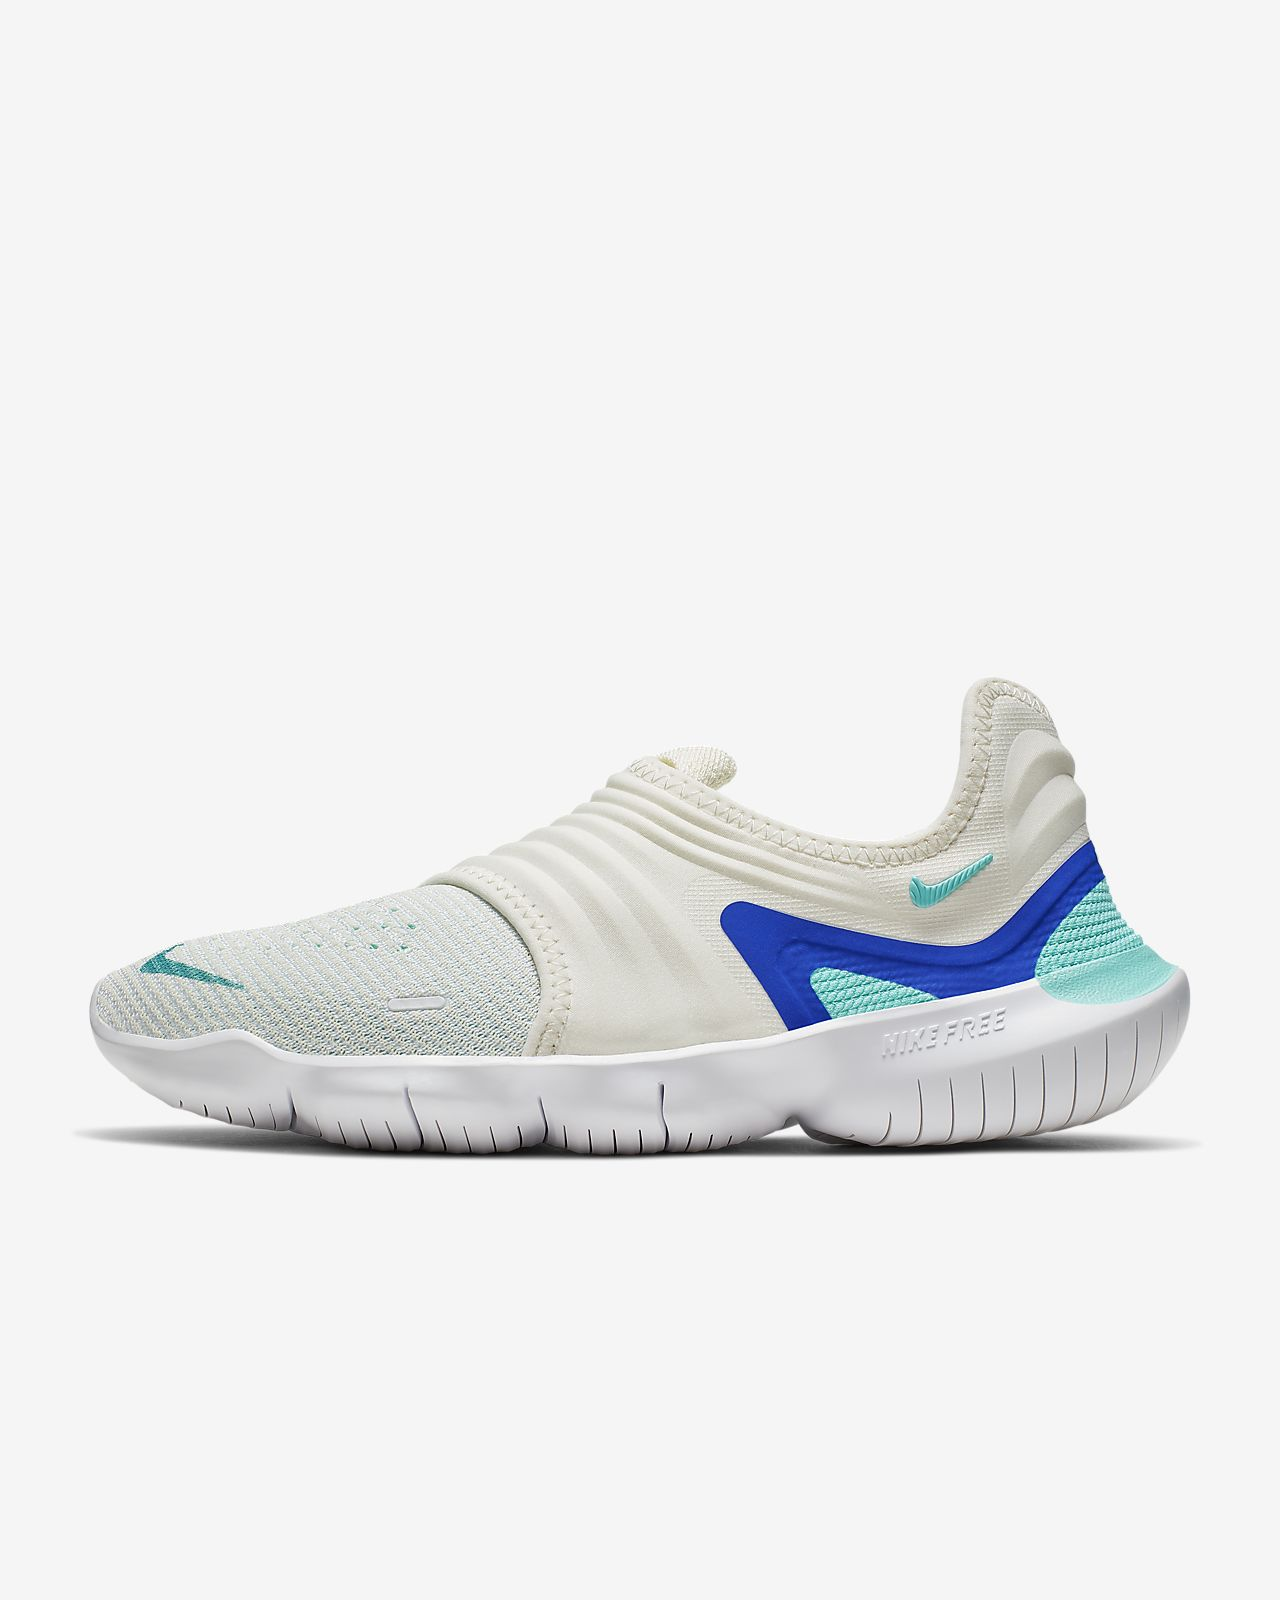 classic fit authorized site huge sale Chaussure de running Nike Free RN Flyknit 3.0 pour Femme. Nike CA